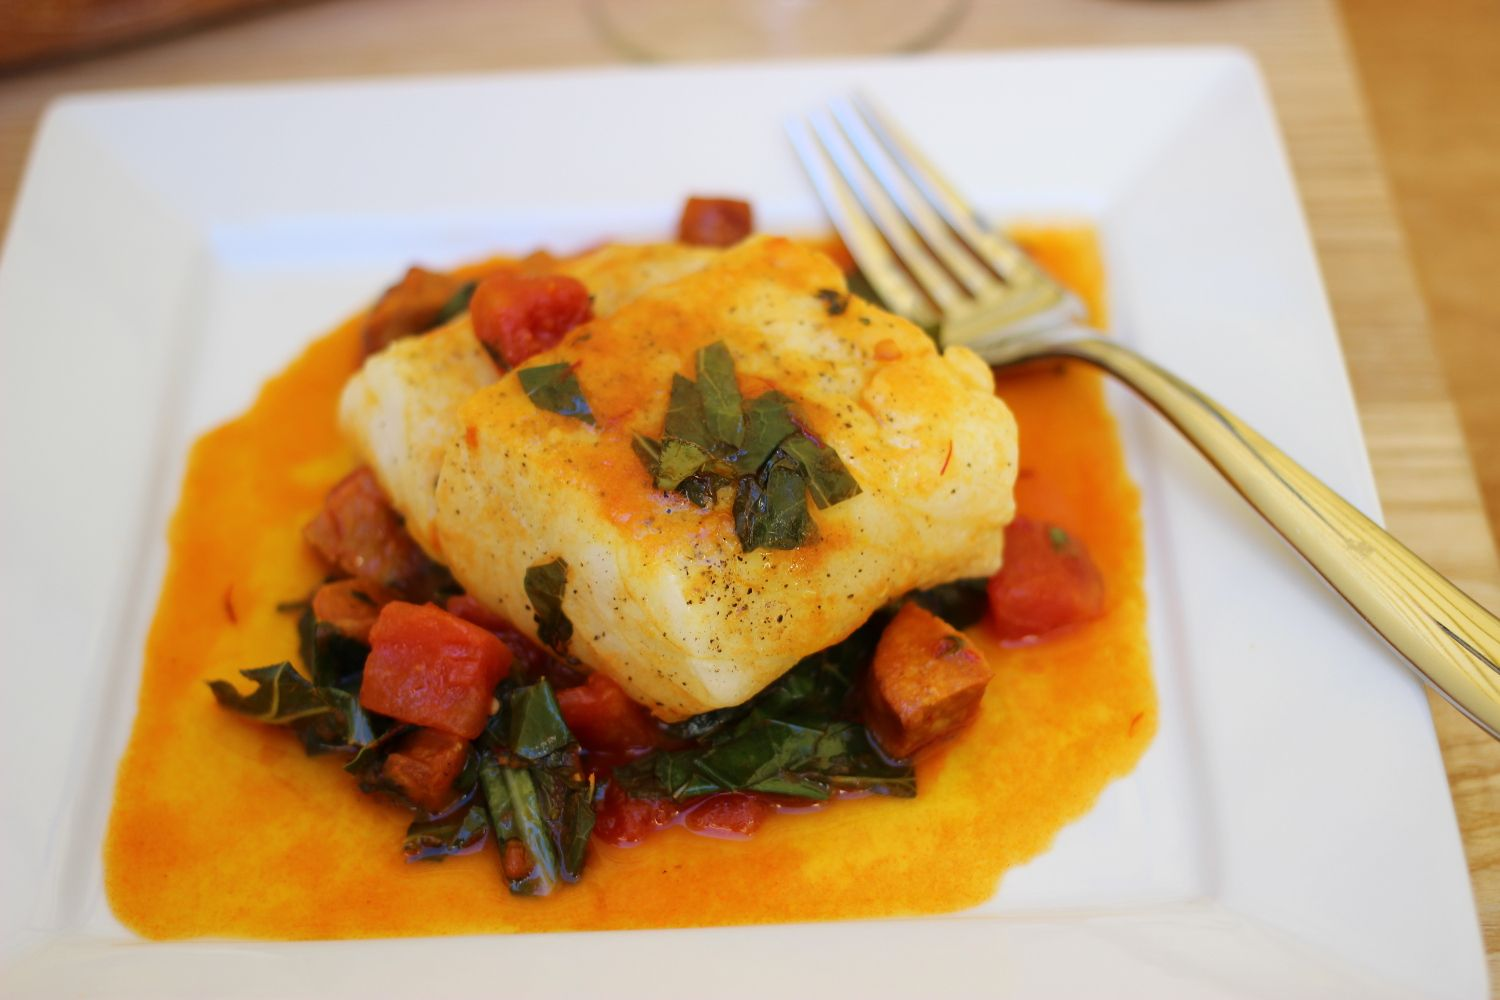 This sear-braised Spanish cod is about as fancy as I get at home. And it's quick and easy, which what makes this hybrid stovetop technique a winner...